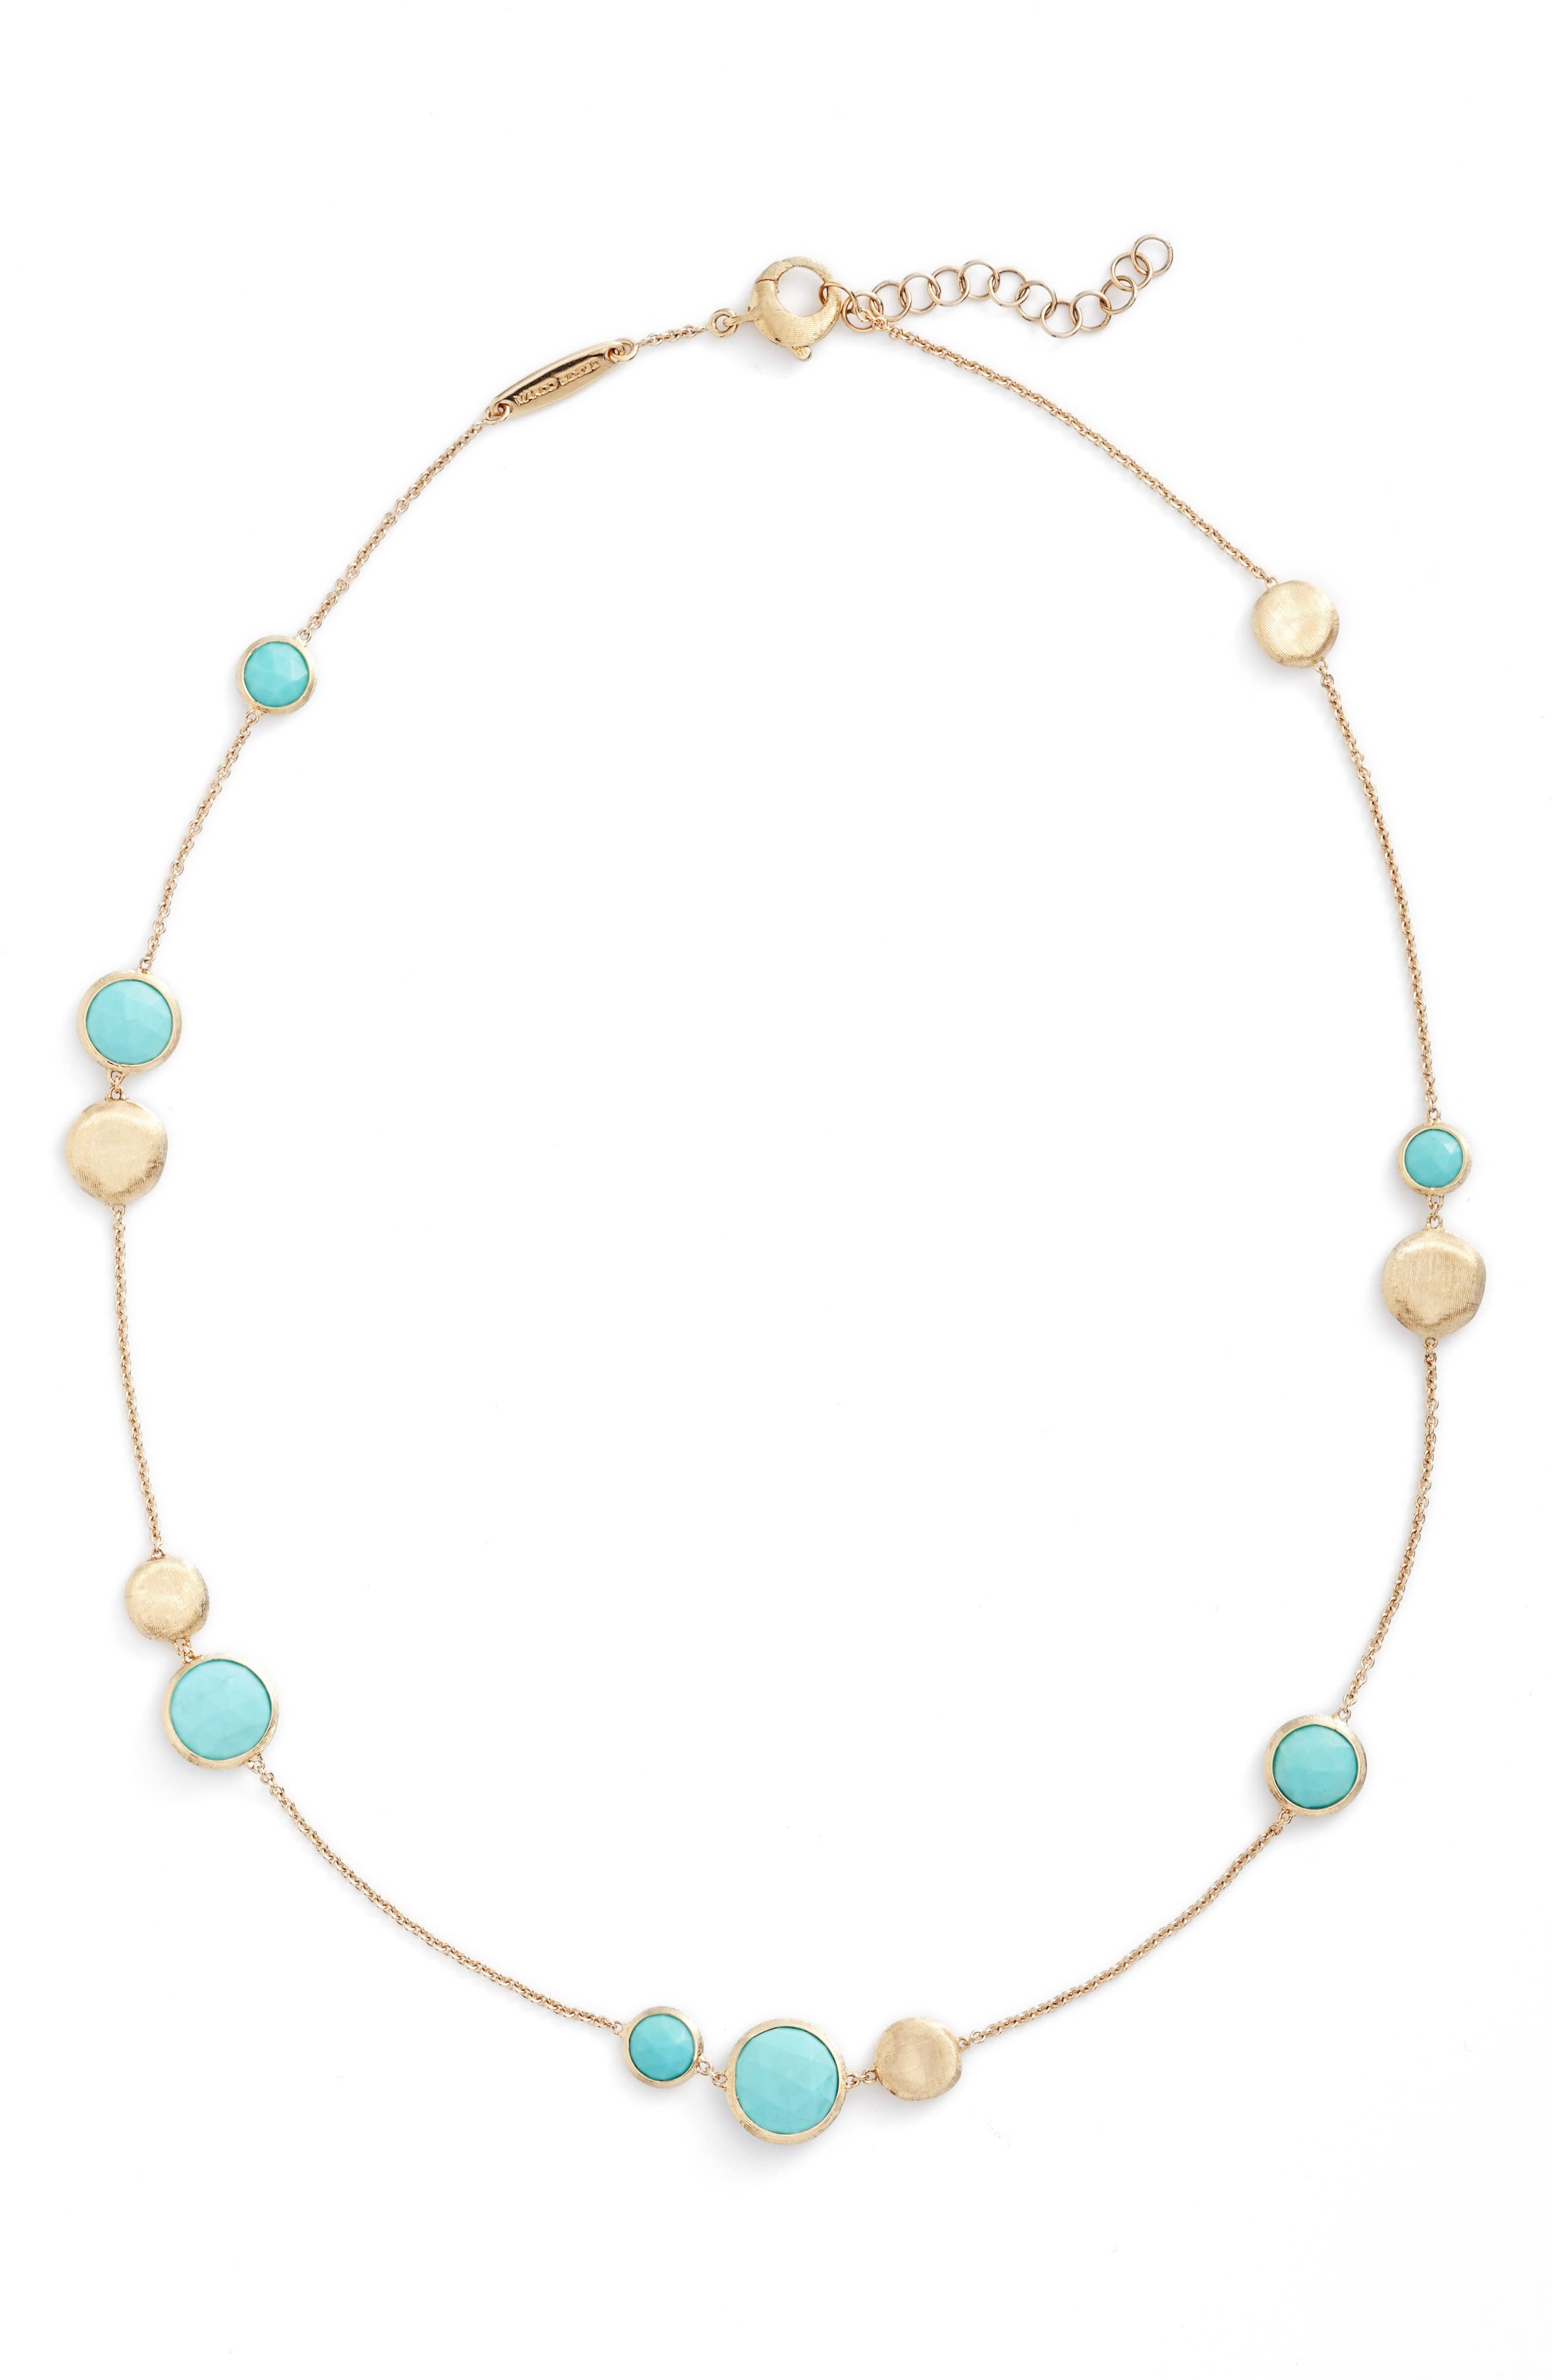 Jaipur Stone Collar Necklace,                             Main thumbnail 1, color,                             YELLOW GOLD/ TURQUOISE